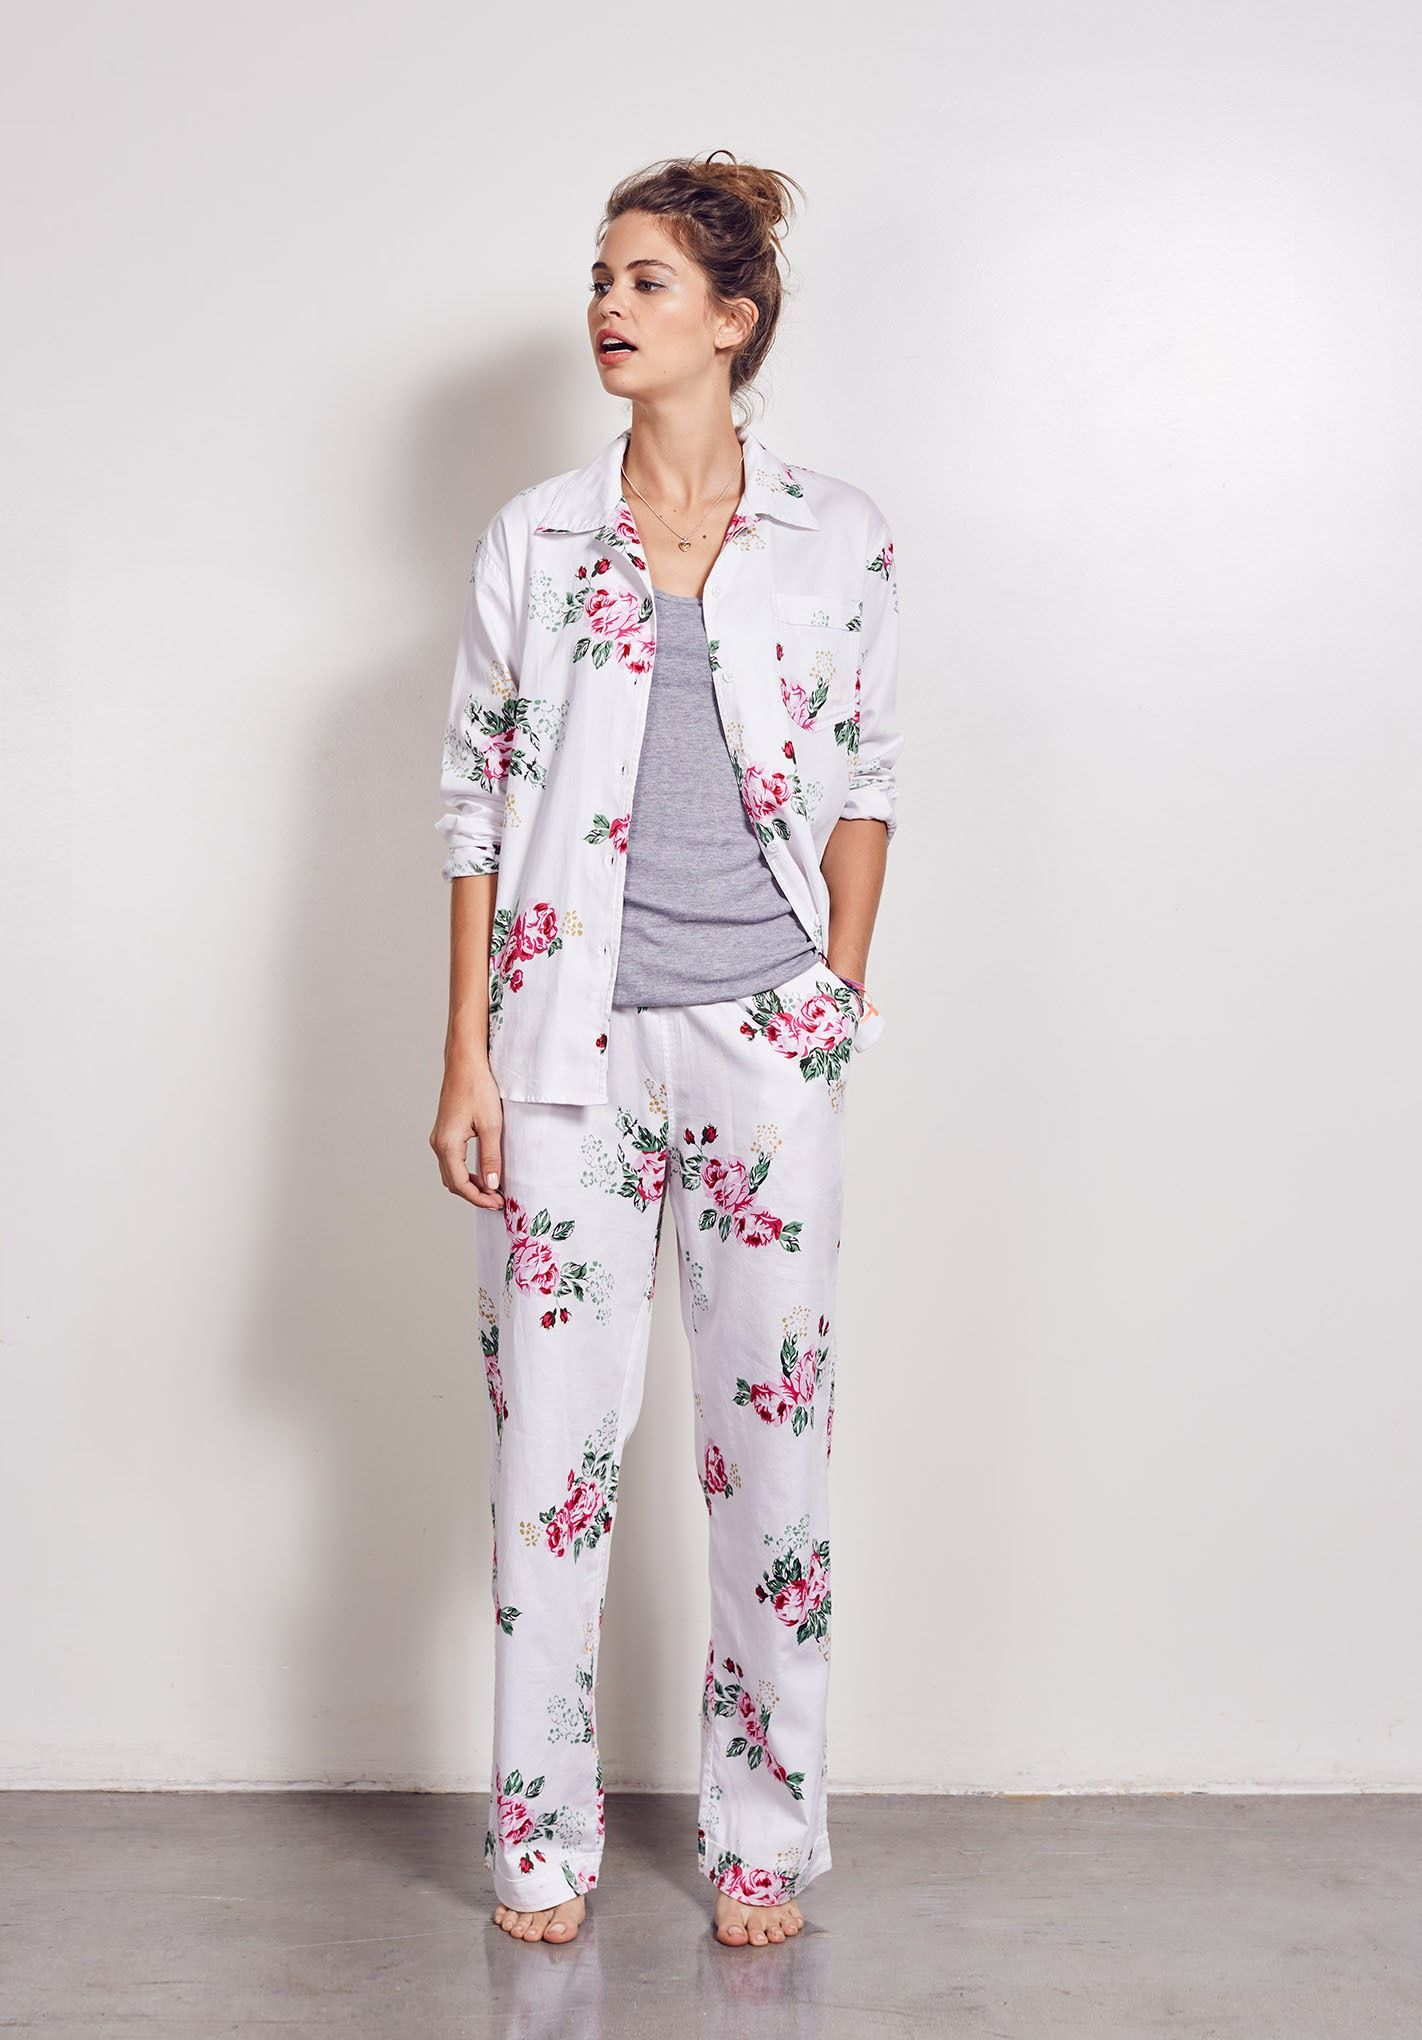 9c2989081116 Hush pyjamas are just the thing for relaxing at home. Wear the vintage rose  print to brighten early mornings and warm summer nights. With matching bag.